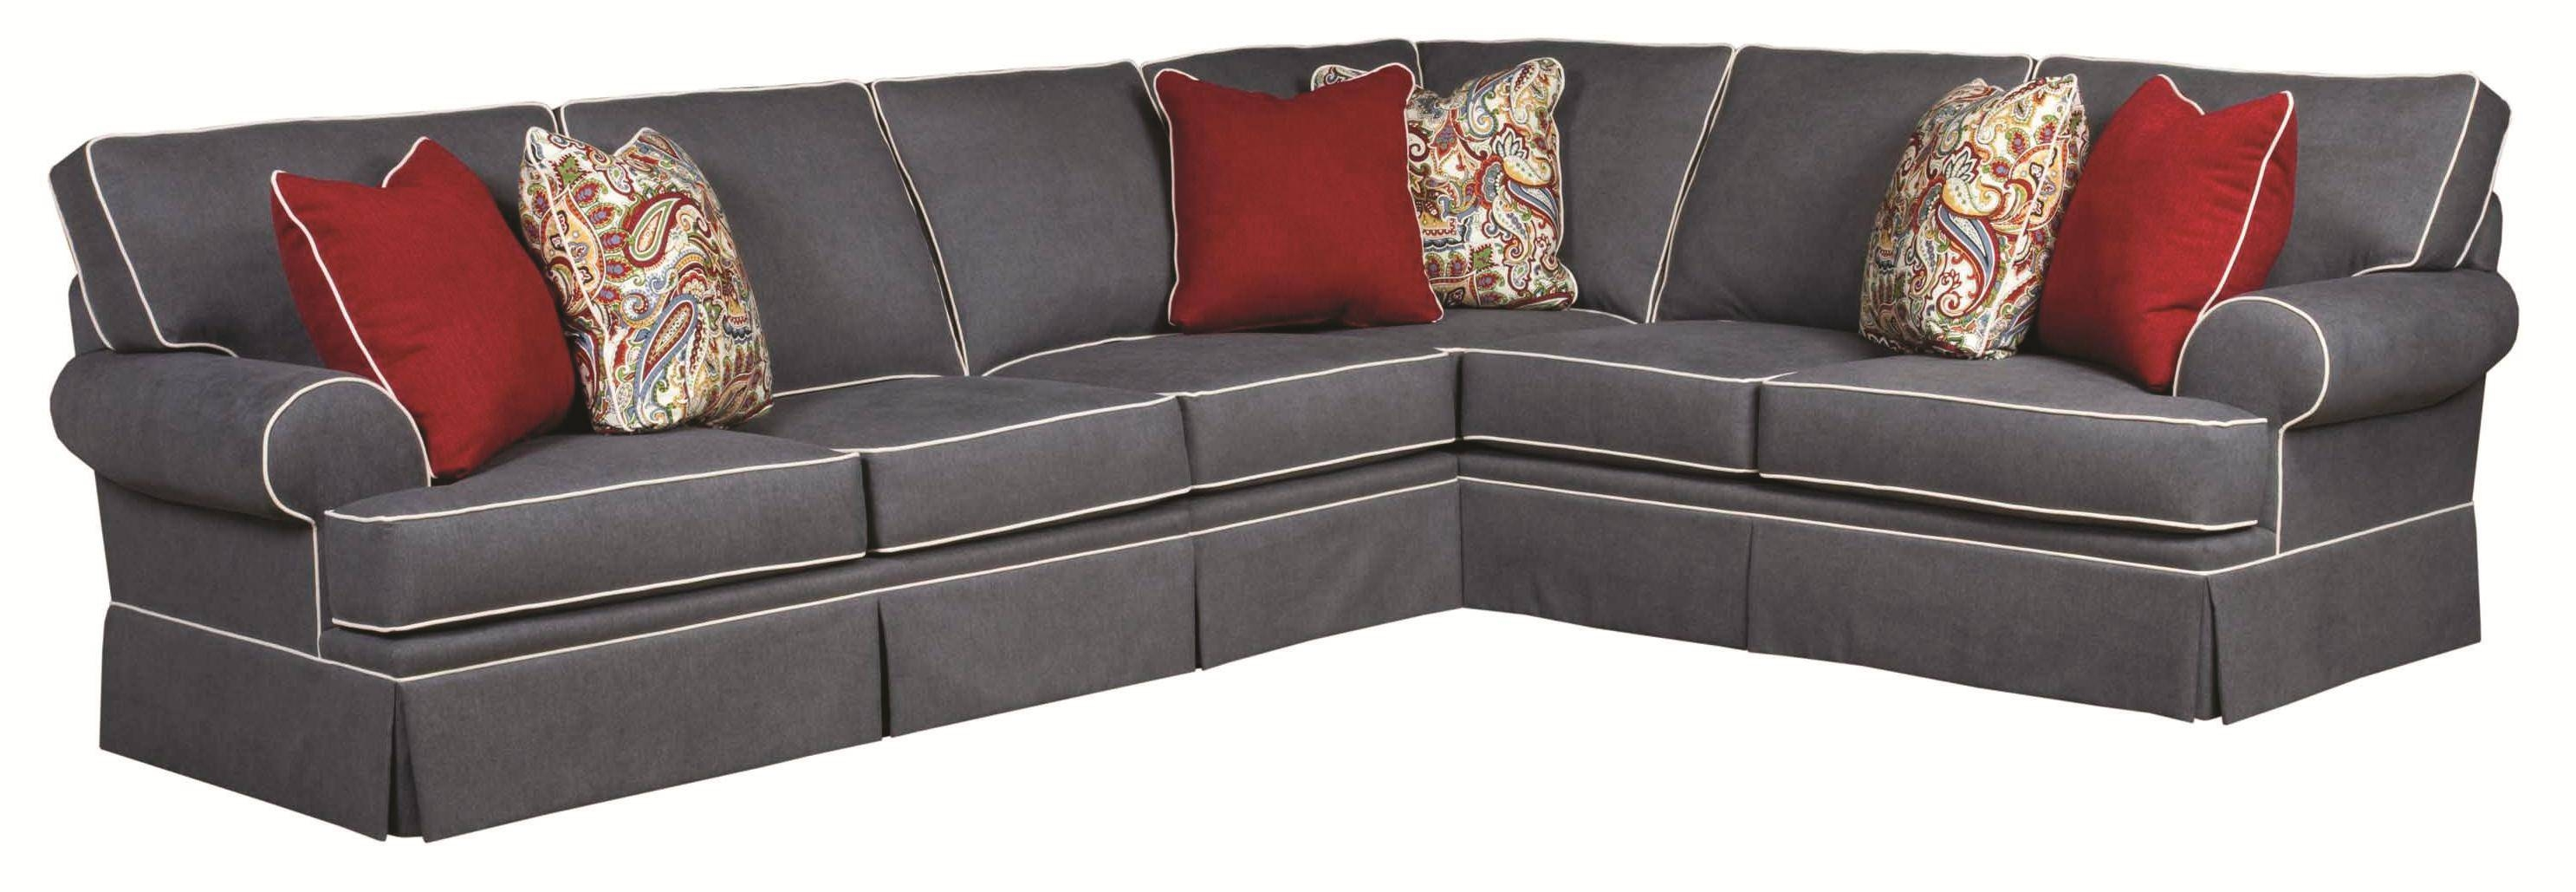 Broyhill Furniture Emily Traditional 3 Piece Sectional Sofa With with regard to Traditional Sectional Sofas (Image 3 of 25)